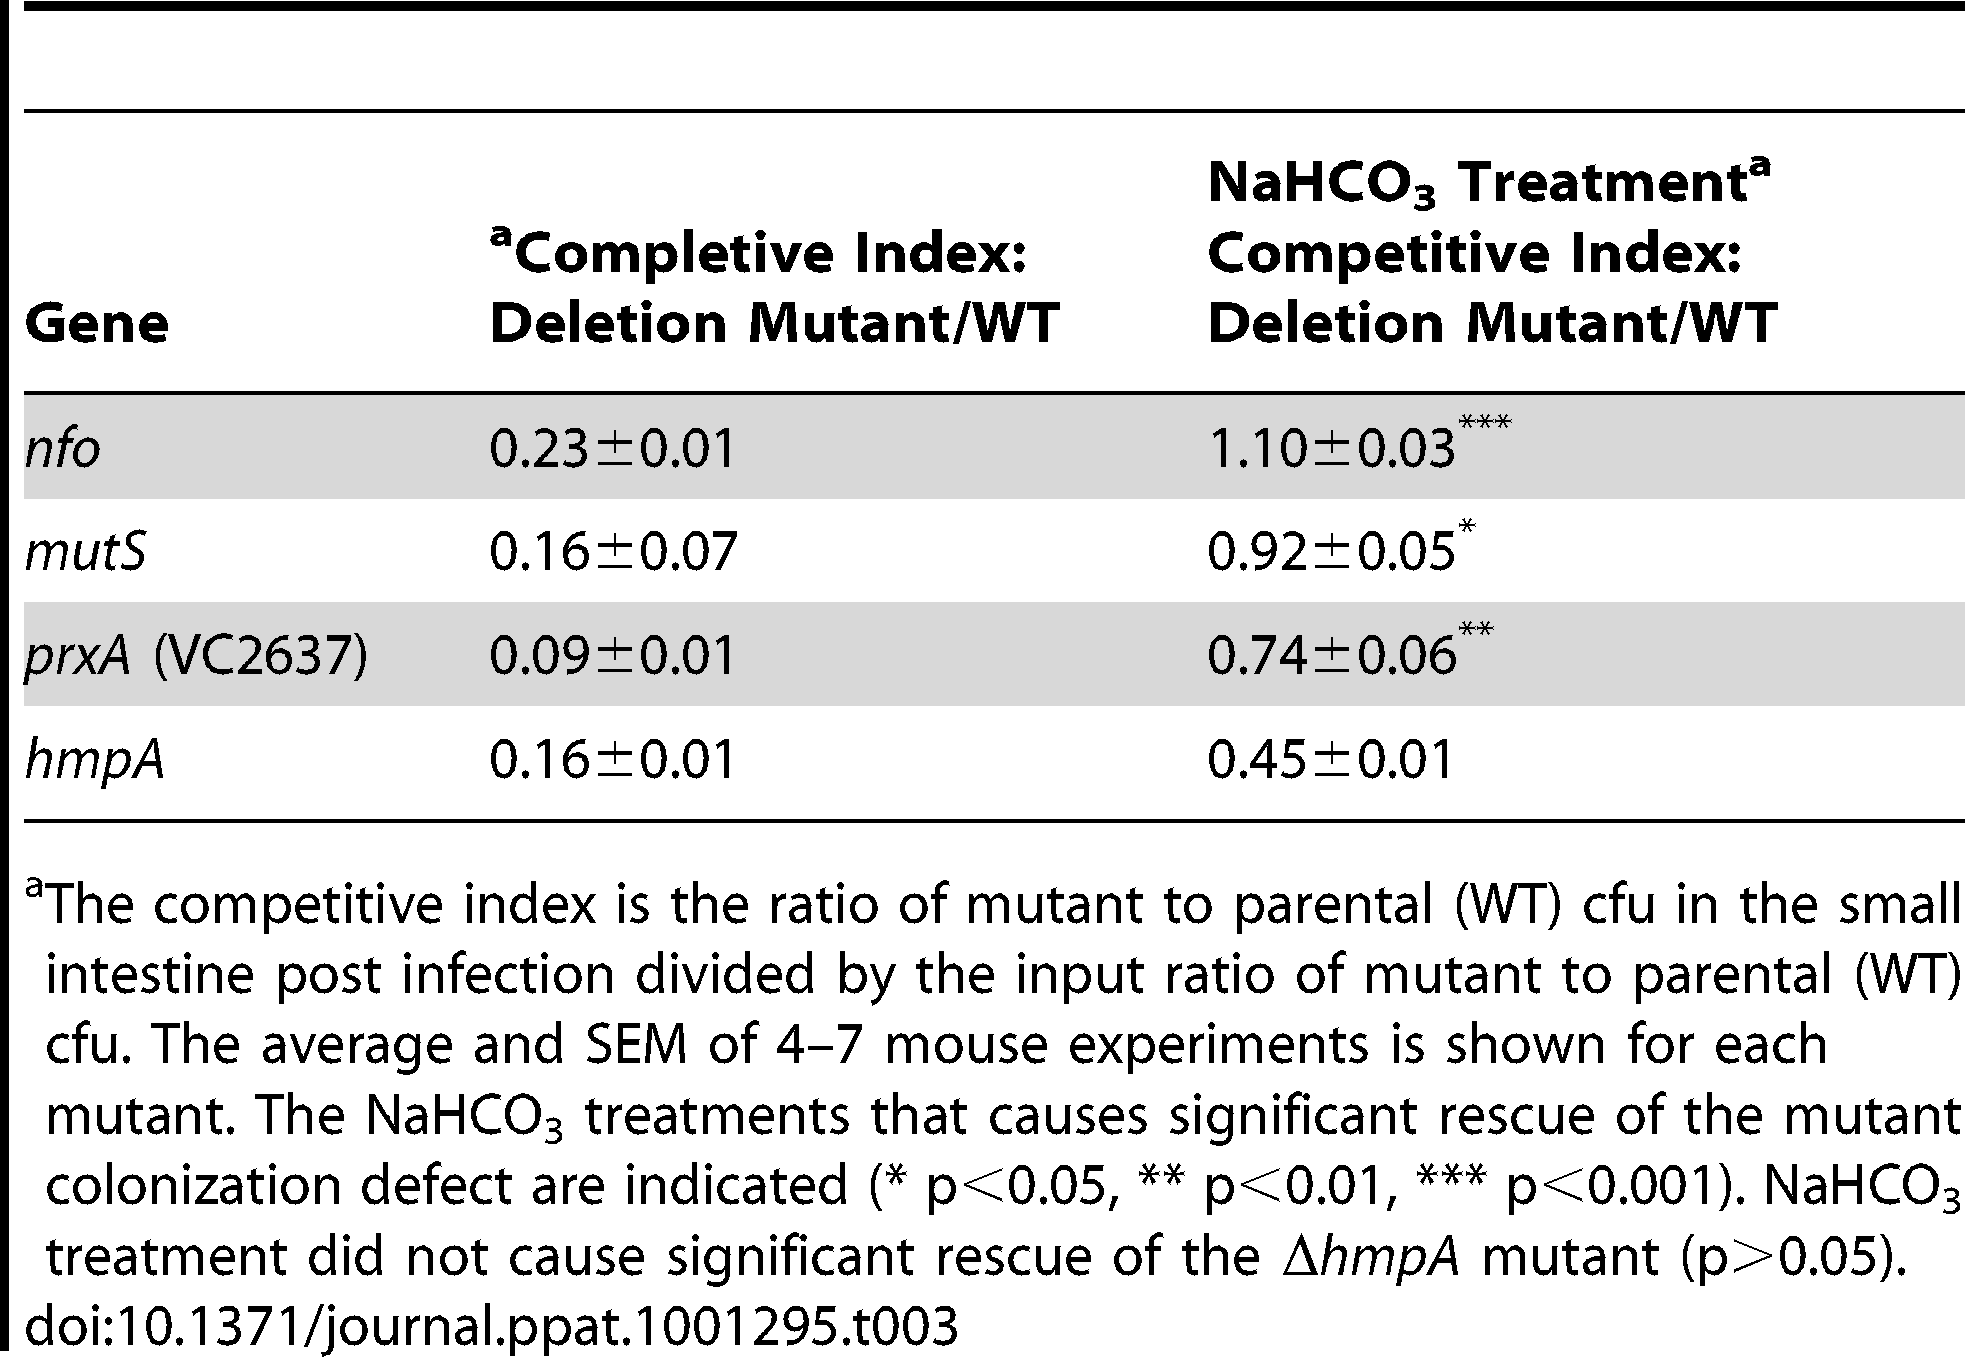 Effect of NaHCO<sub>3</sub> on mutant <i>V. cholerae</i> ability to colonize the infant mouse intestine in competition with the parental strain (wild type).